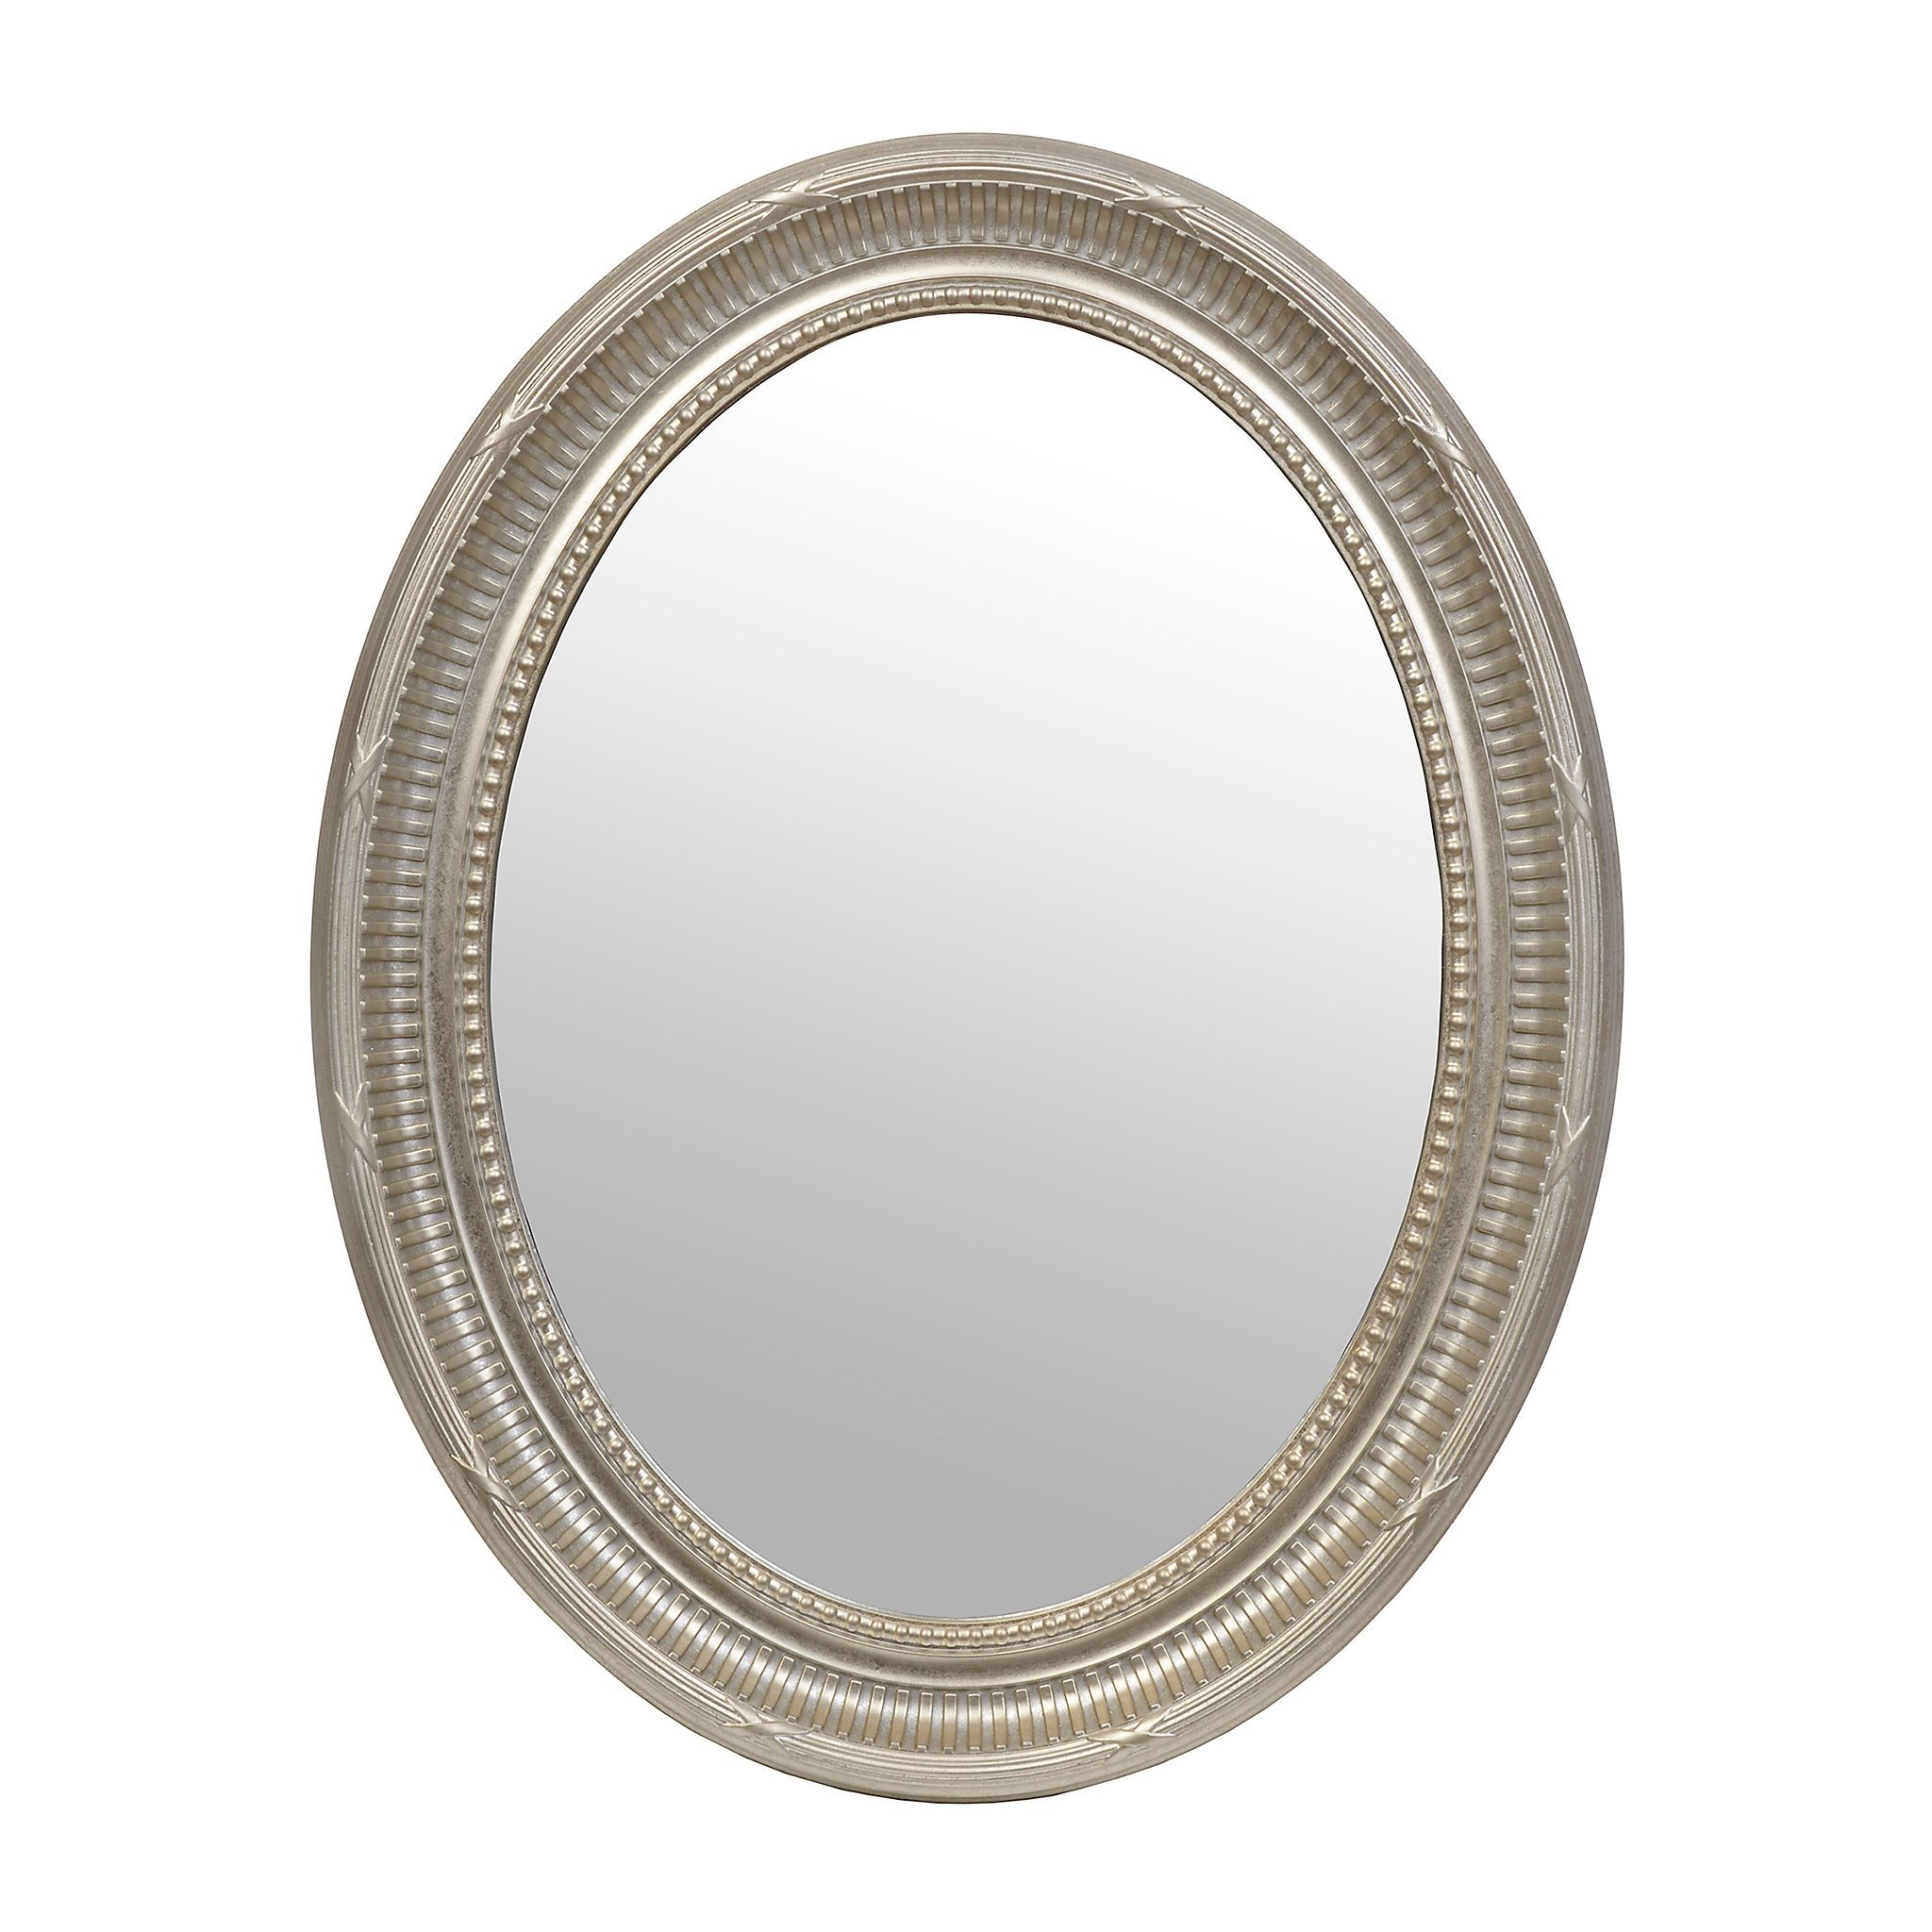 Harrison Silver Framed Oval Mirror, 26X335